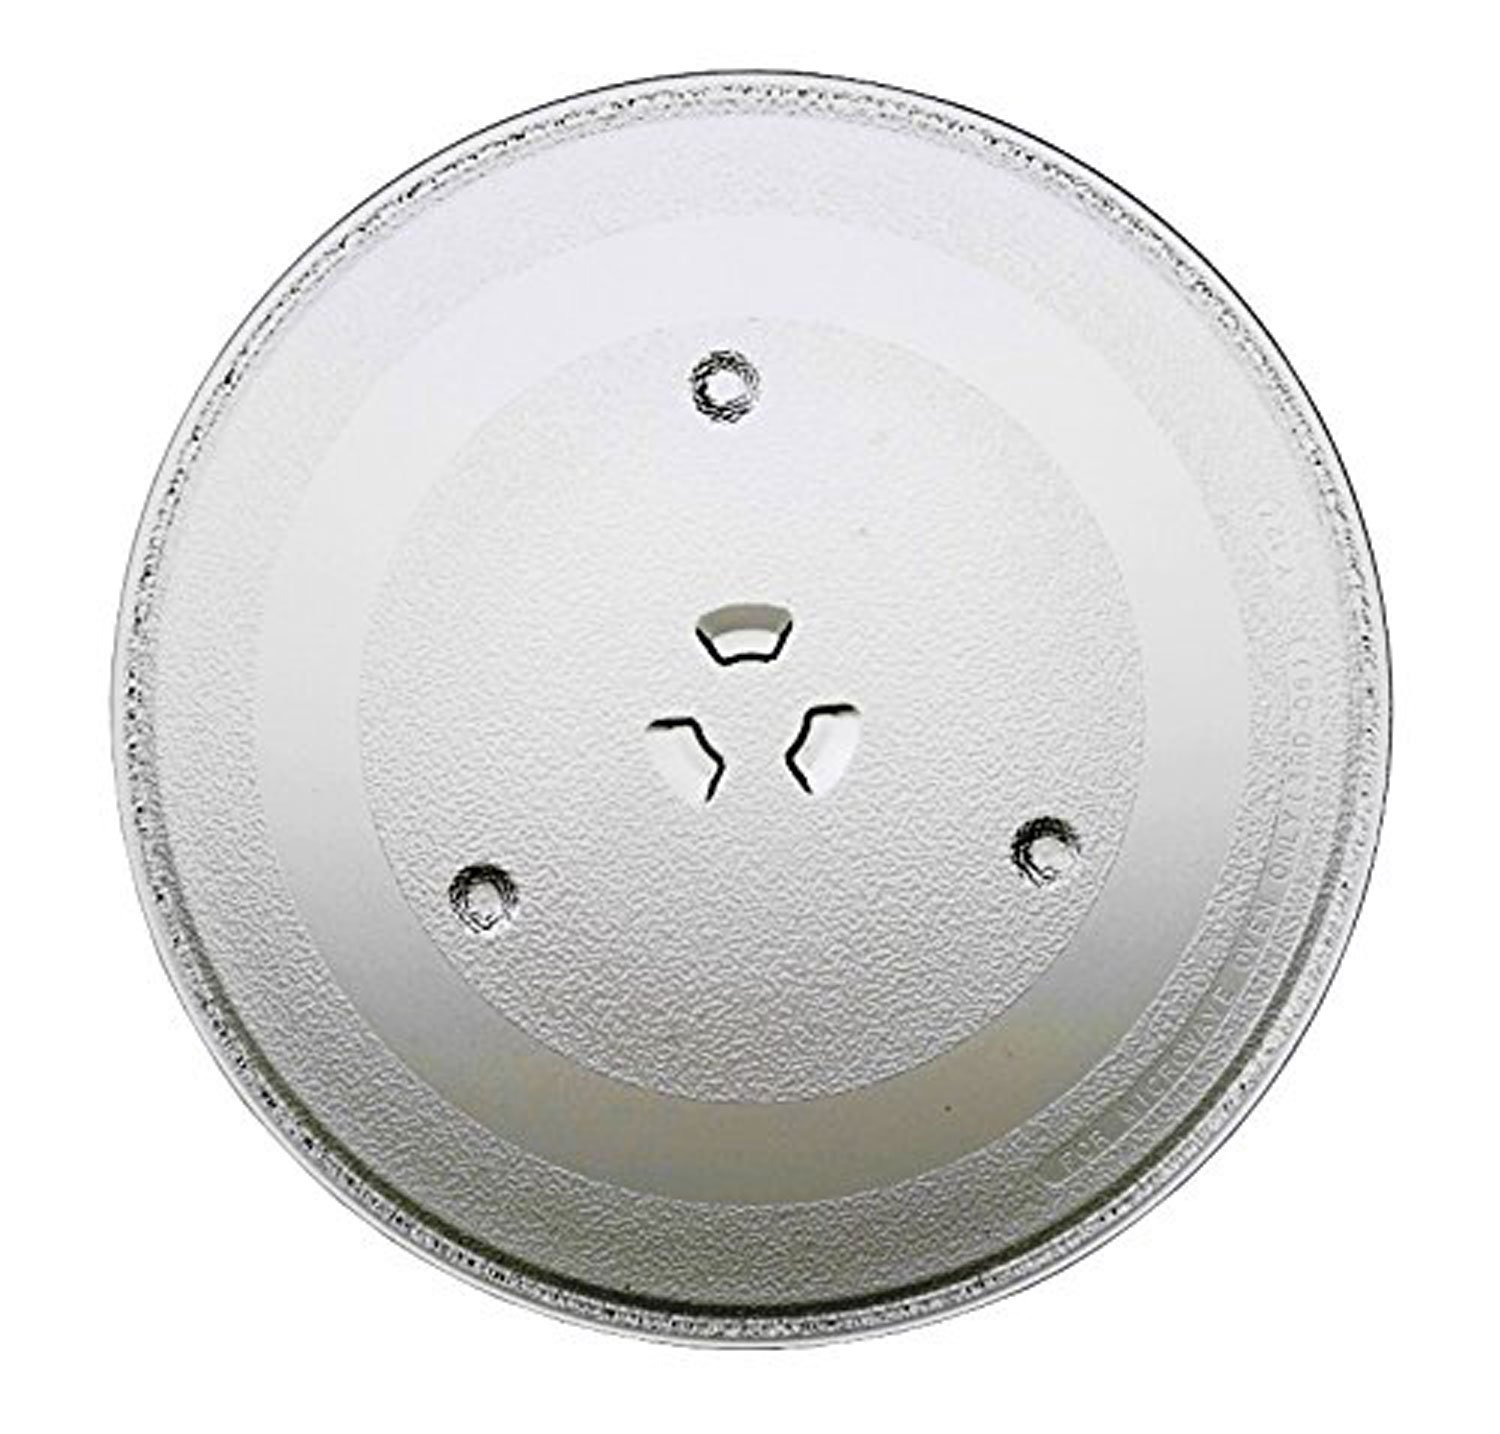 WES1130DM3WW Microwave Plate works with GE